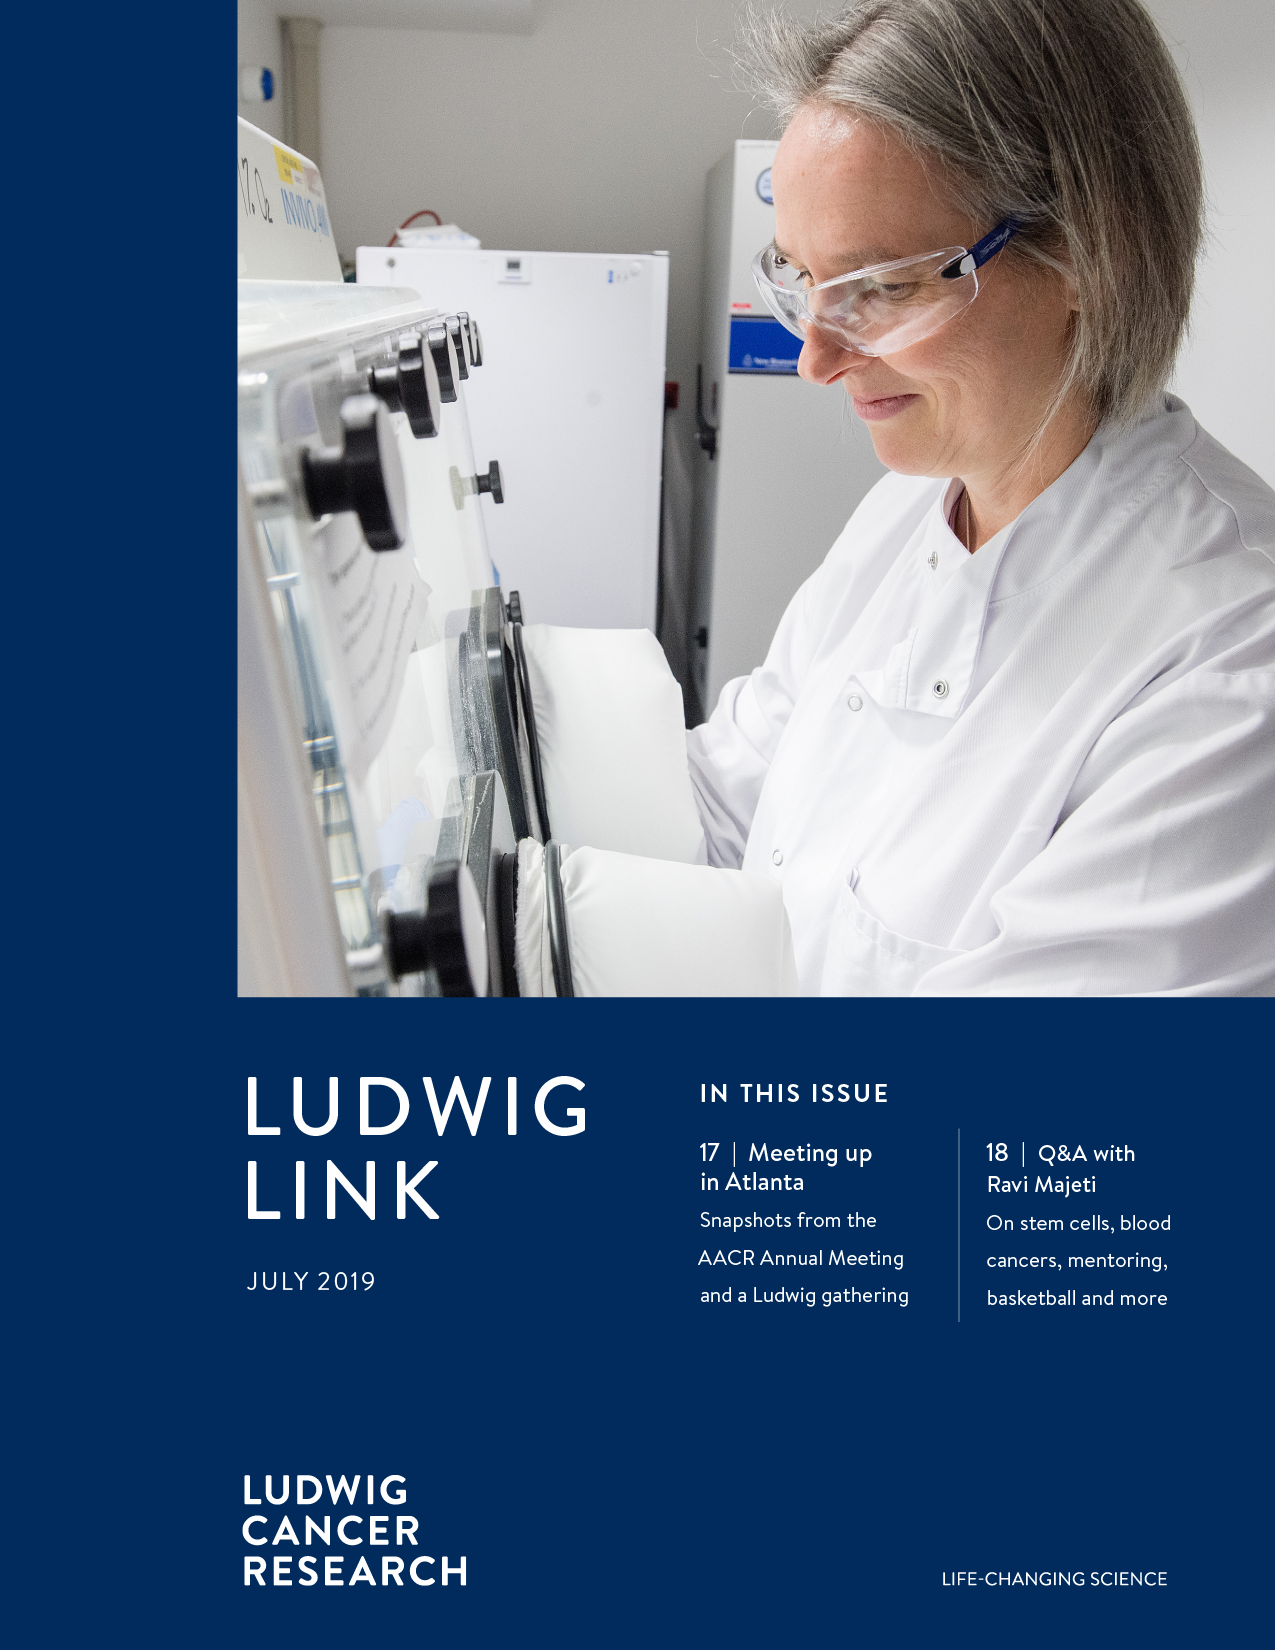 Ludwig Link July 2019 cover